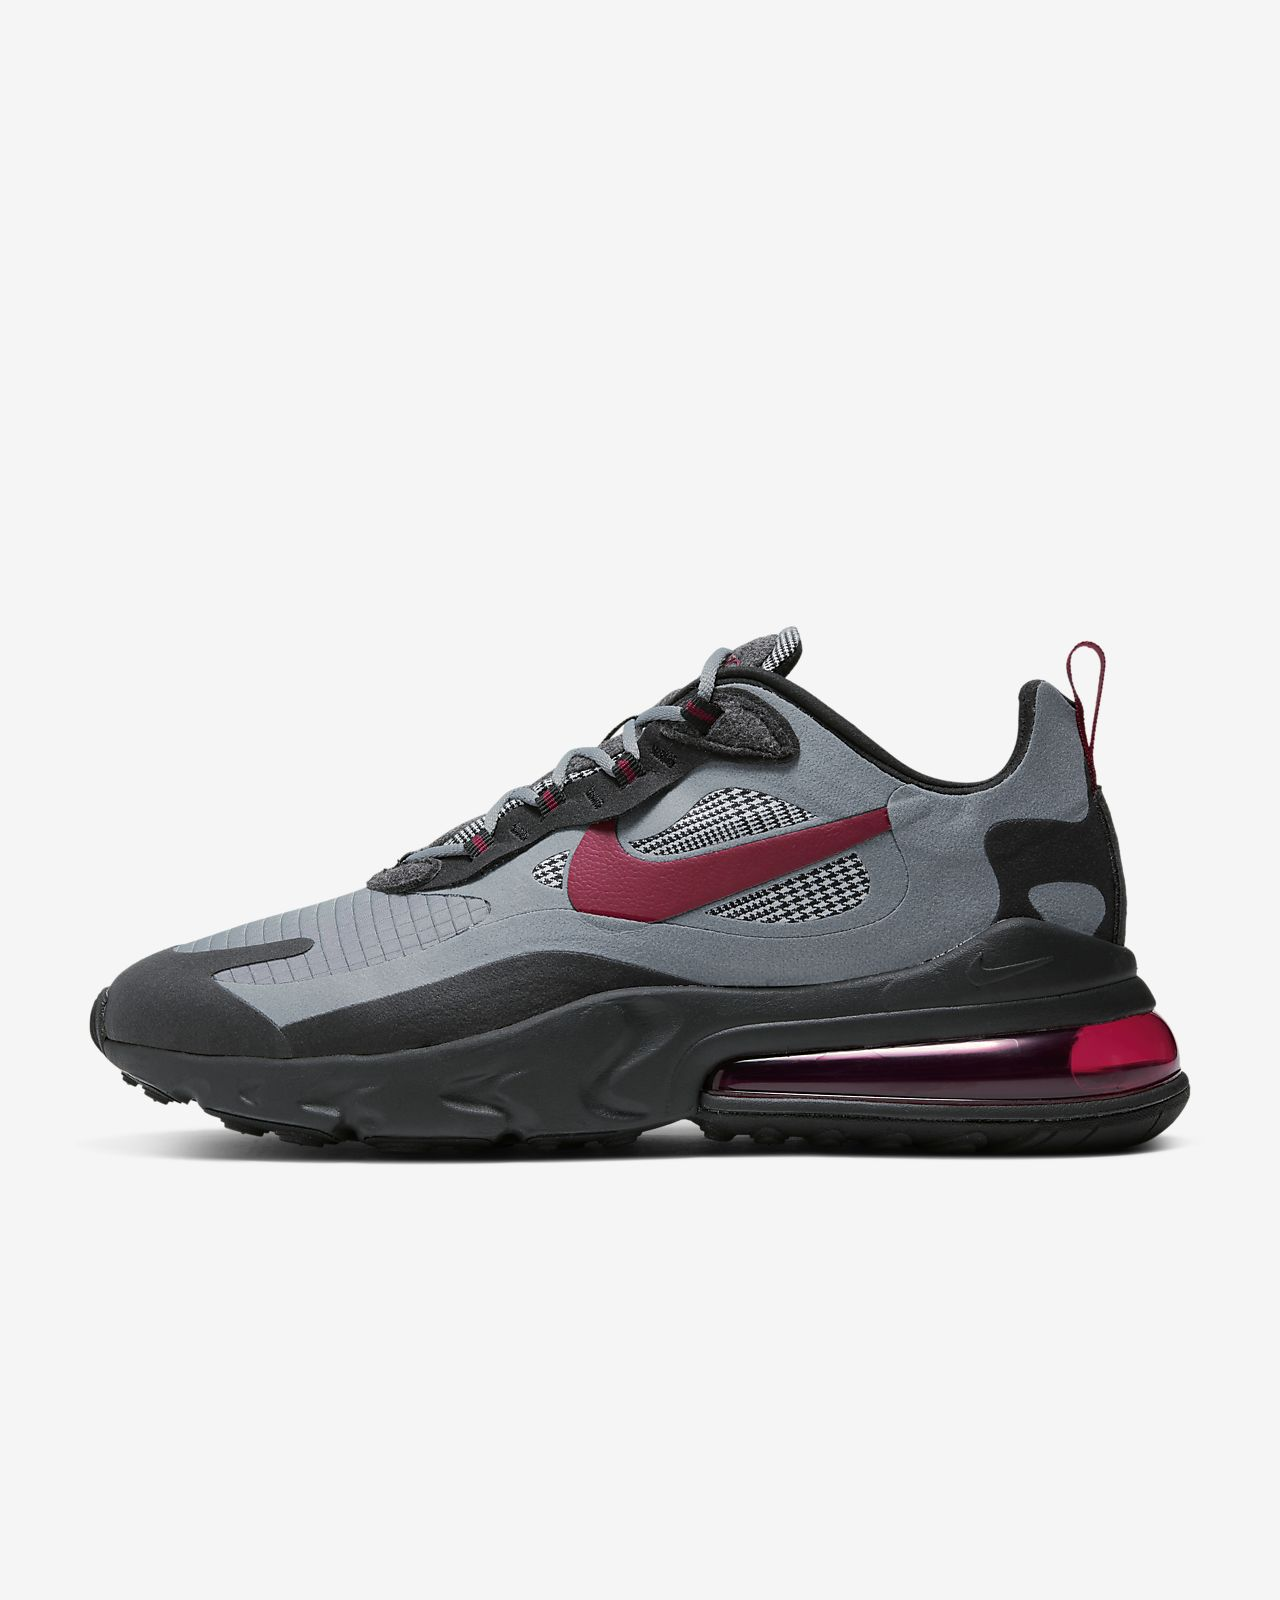 air max 270 react grey and red